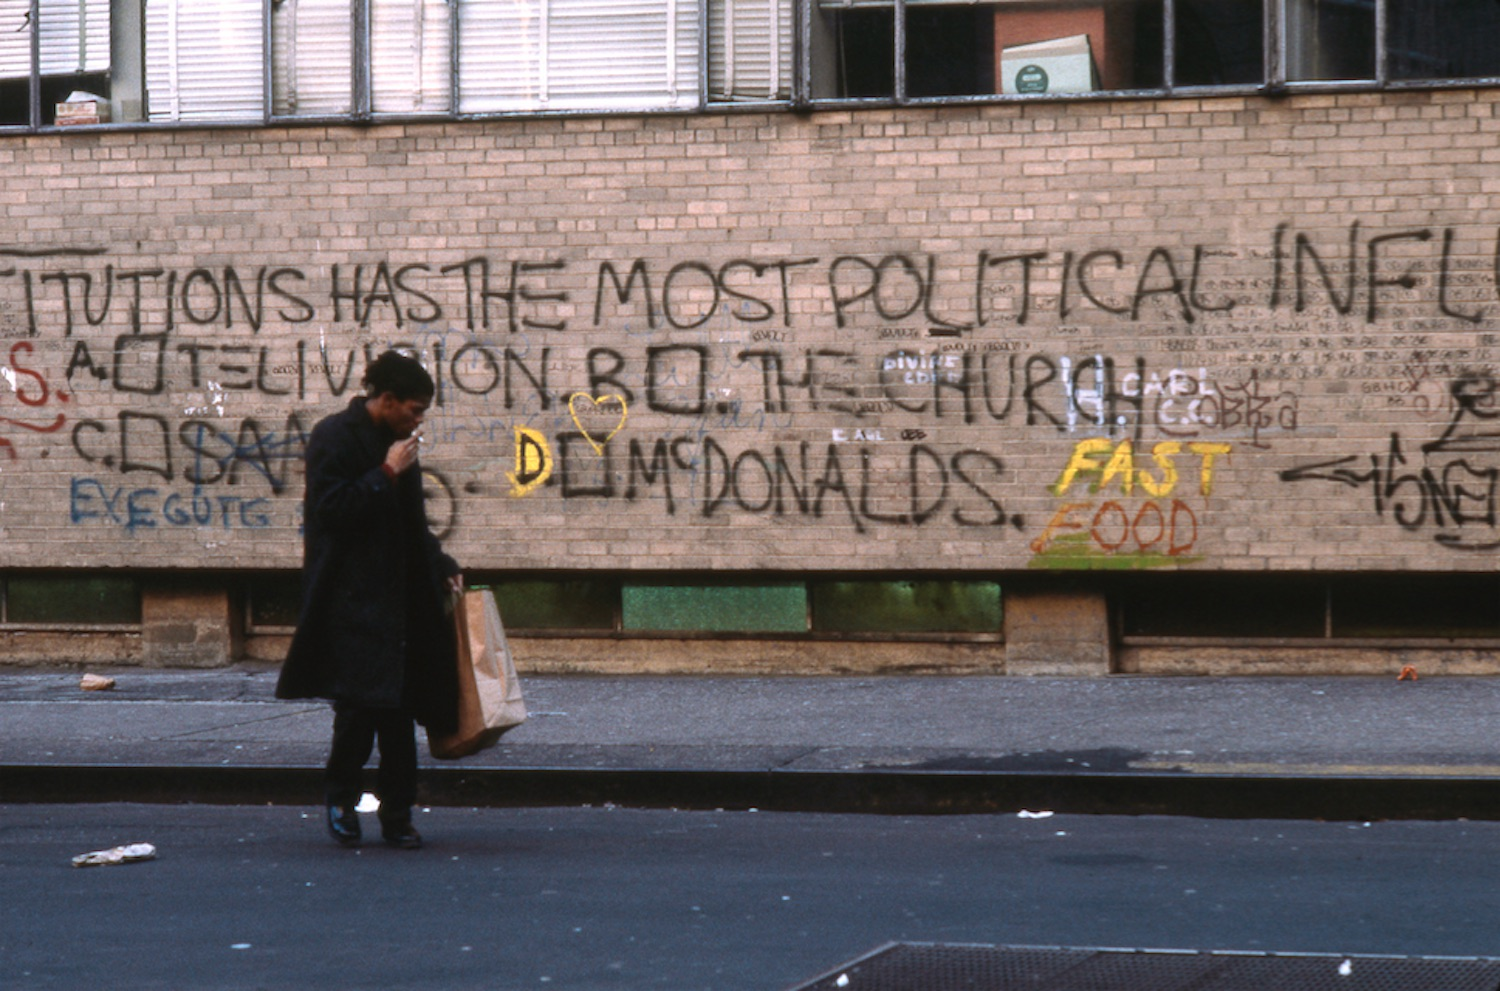 THESE INSTITUTIONS HAS THE MOST POLITICAL INFLUENCE A.TELEVISION B. THE CHURCH C. SAMO D. MC DONALDS', Downtown 81, Edo Bertoglio ©New York Beat Film